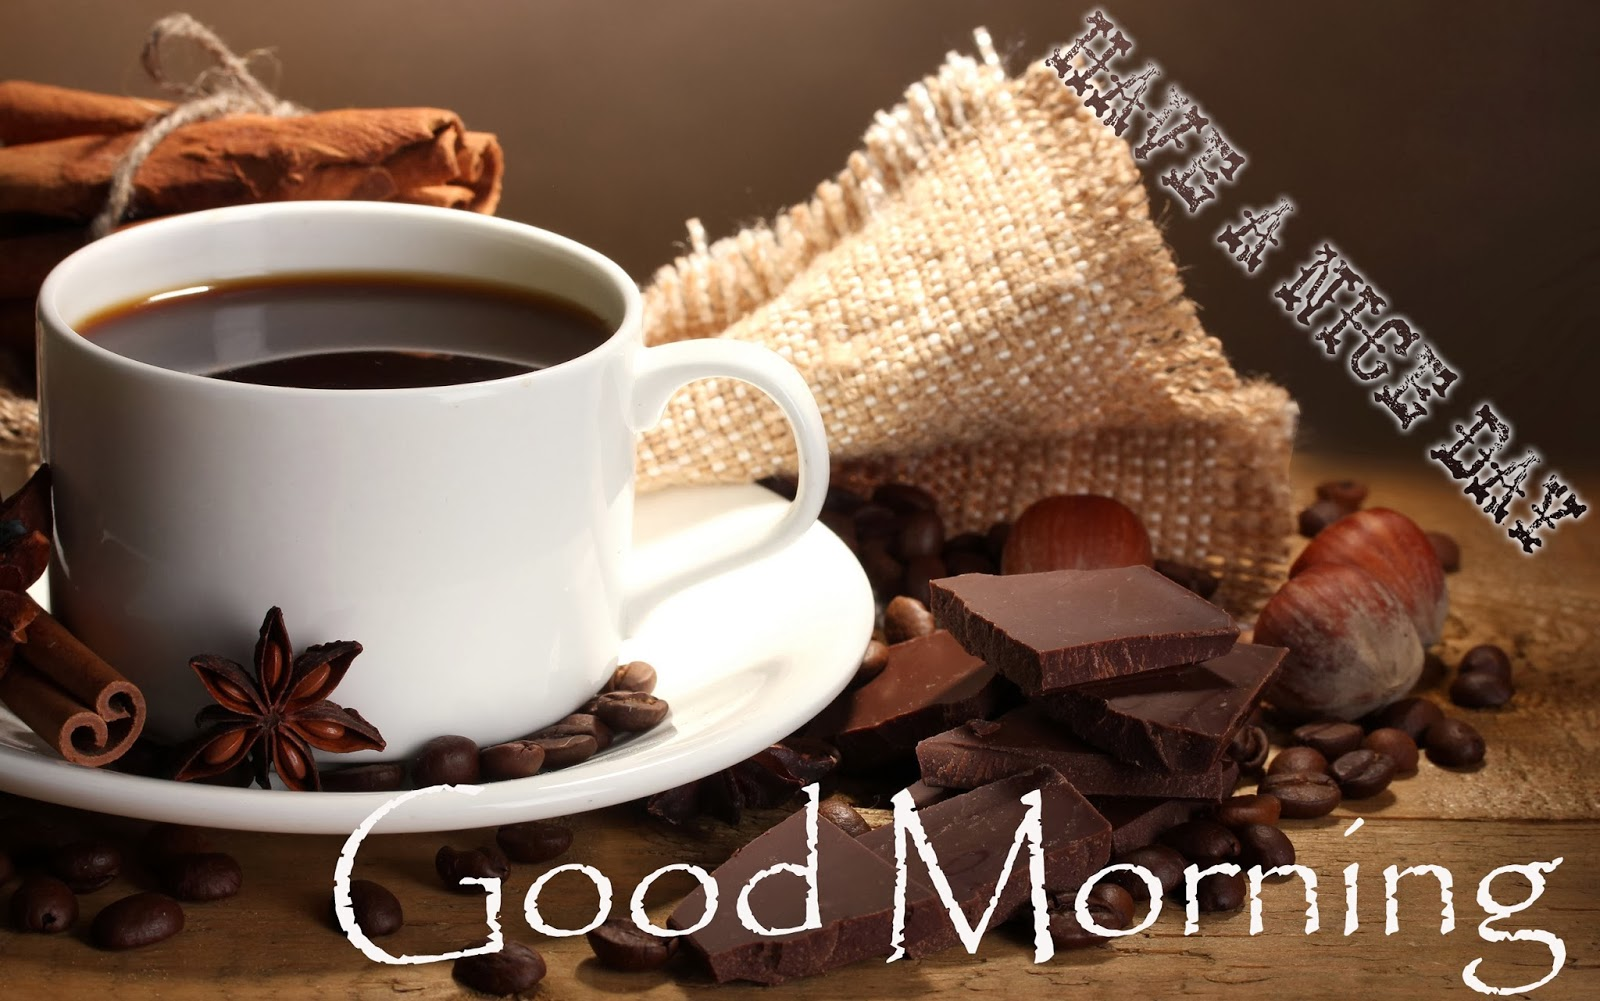 Good-Morning-Coffee-With-Chocolate-Image-HD-Wide